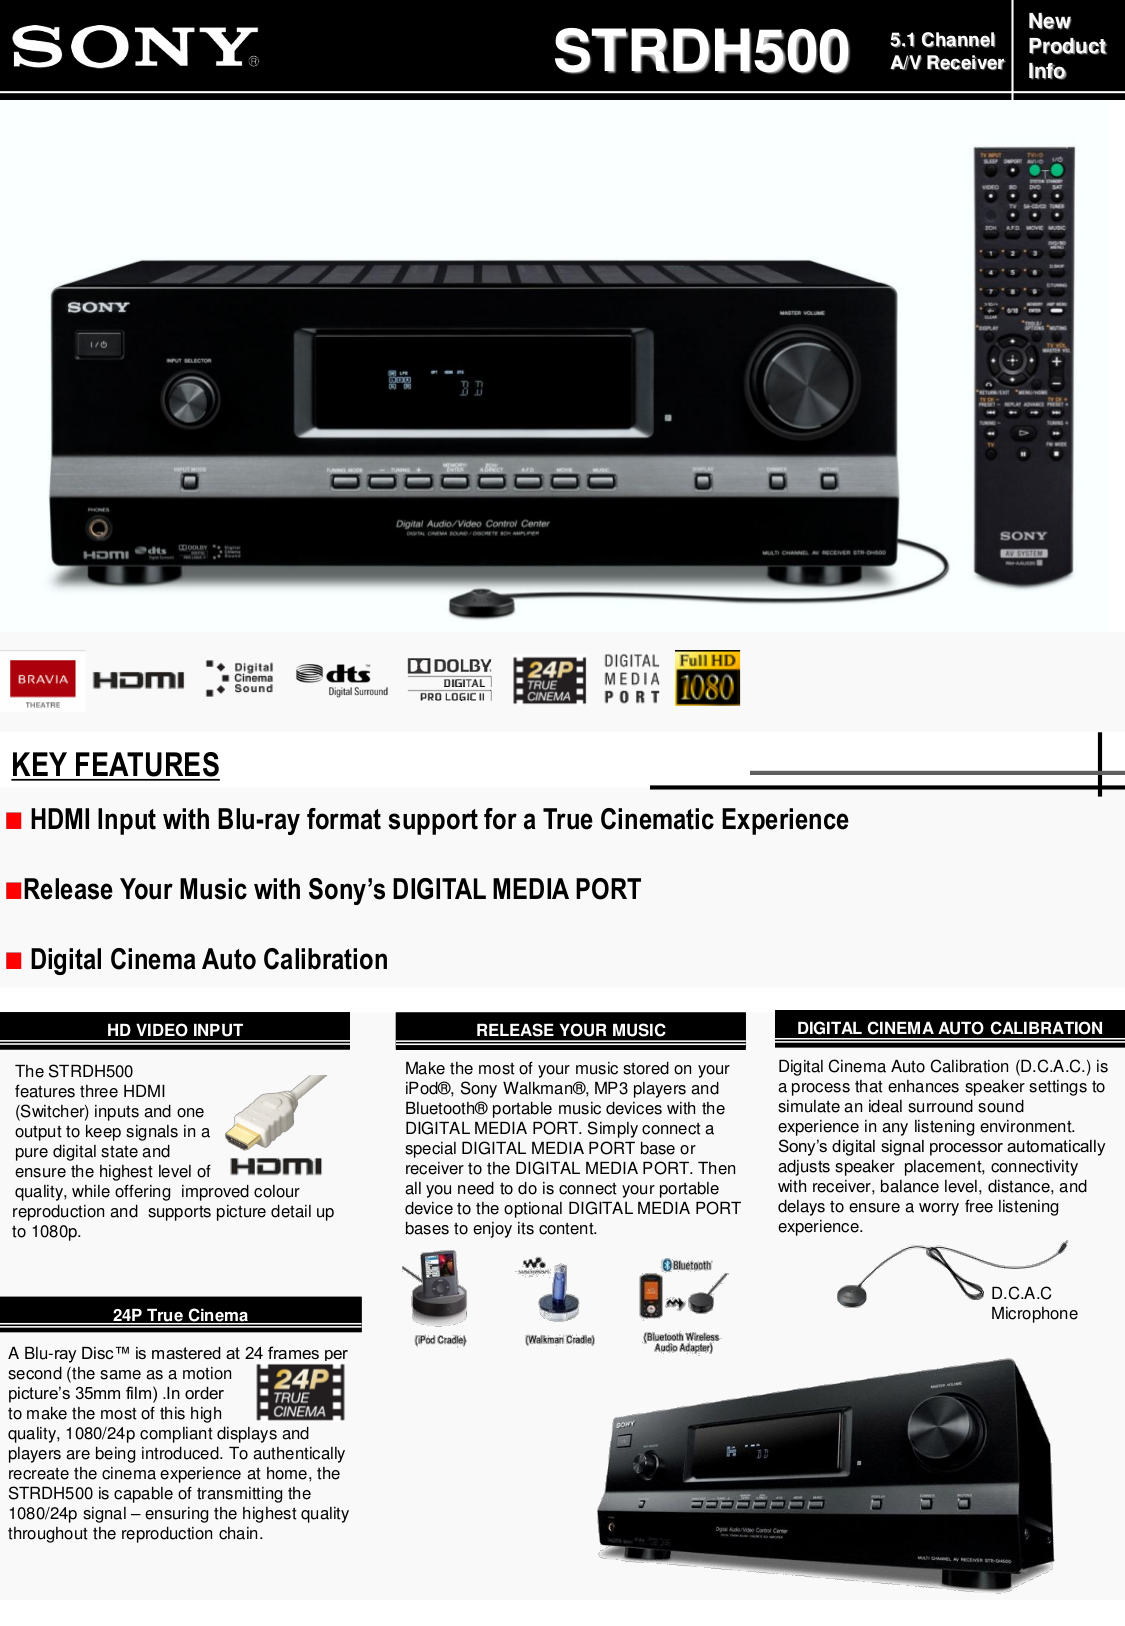 download free pdf for sony str dh500 receiver manual rh umlib com sony av receiver str-dh500 manual sony str-dh500 manuel